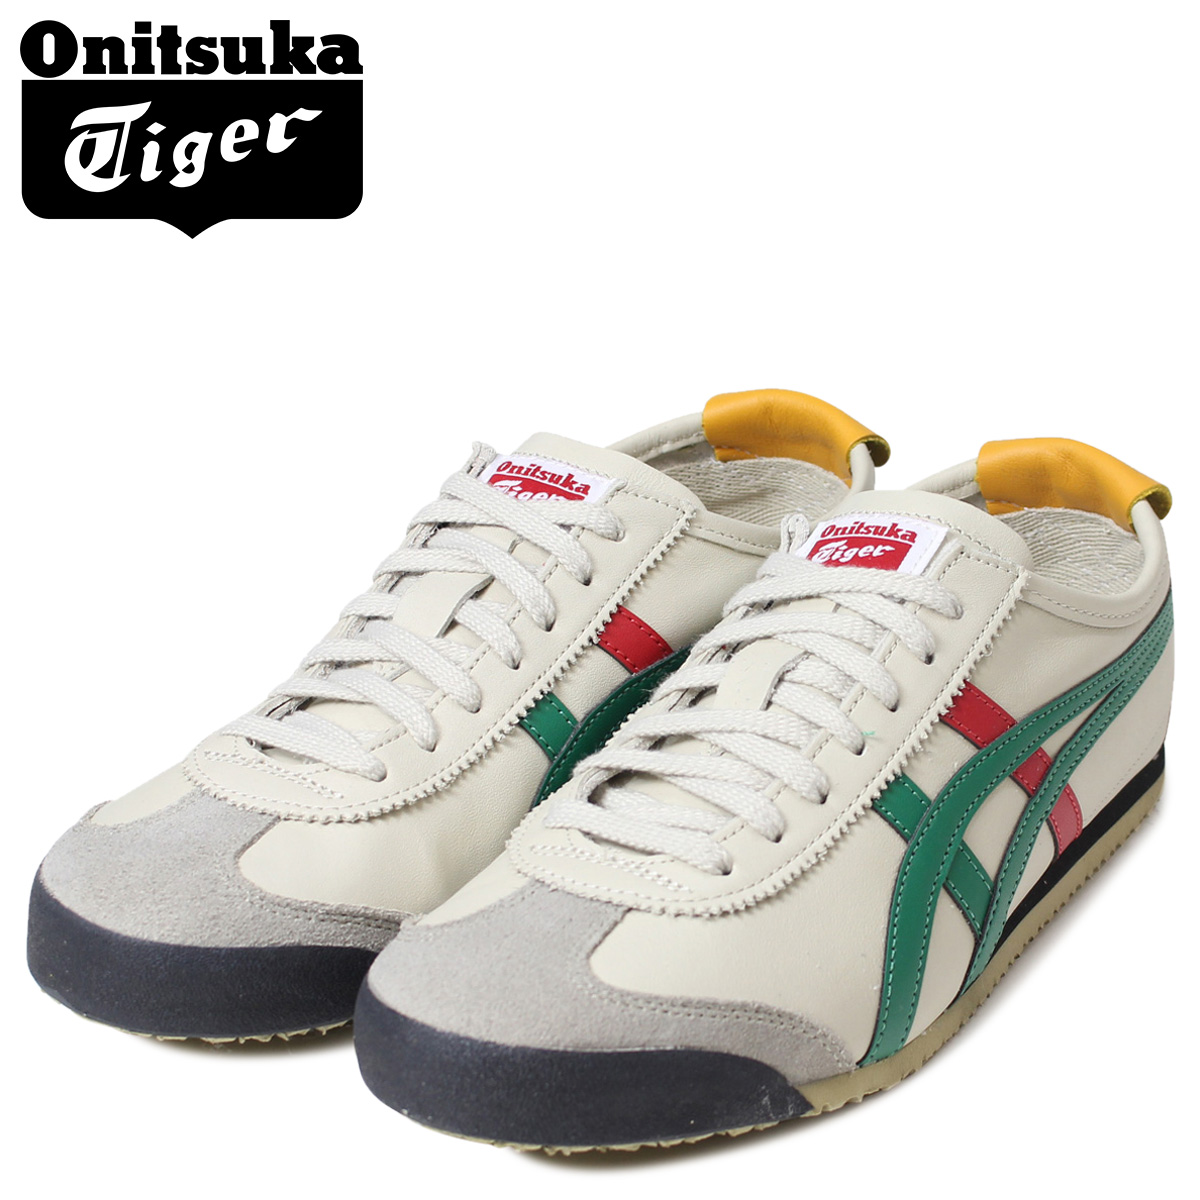 competitive price 700e3 b1647 czech asics onitsuka tiger sneakers 6aecd be254